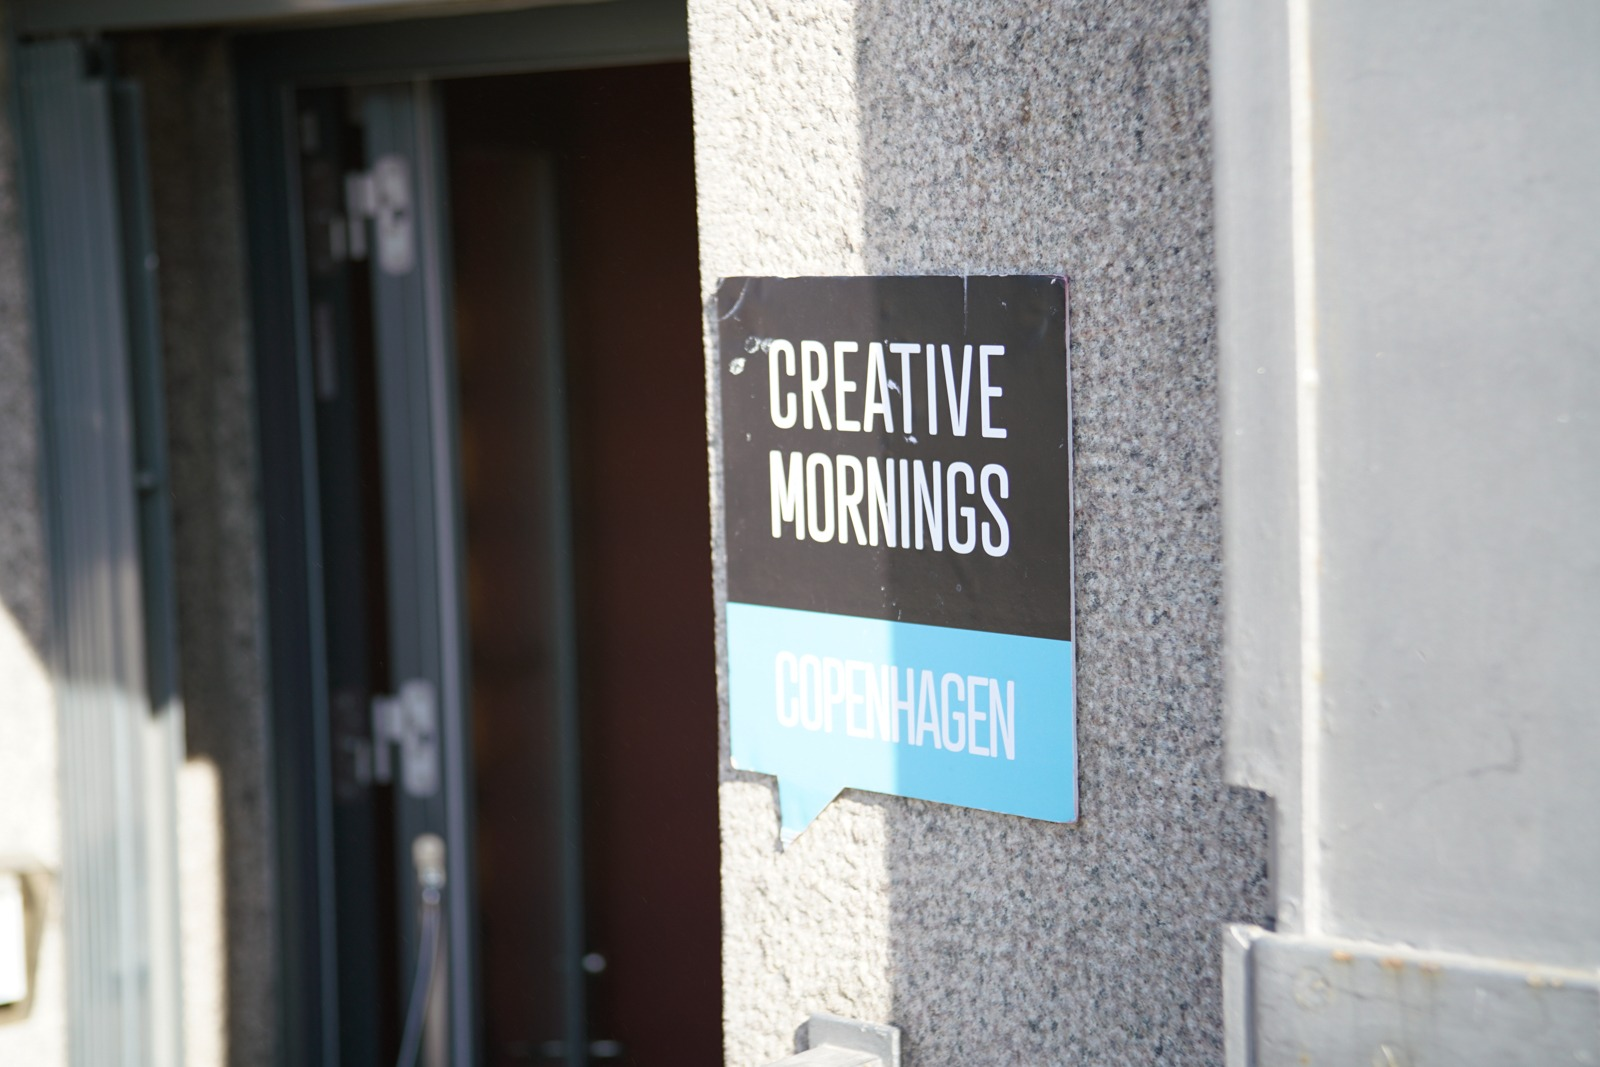 Event photography: Creative Mornings Cph - shot with Lomography Neptune